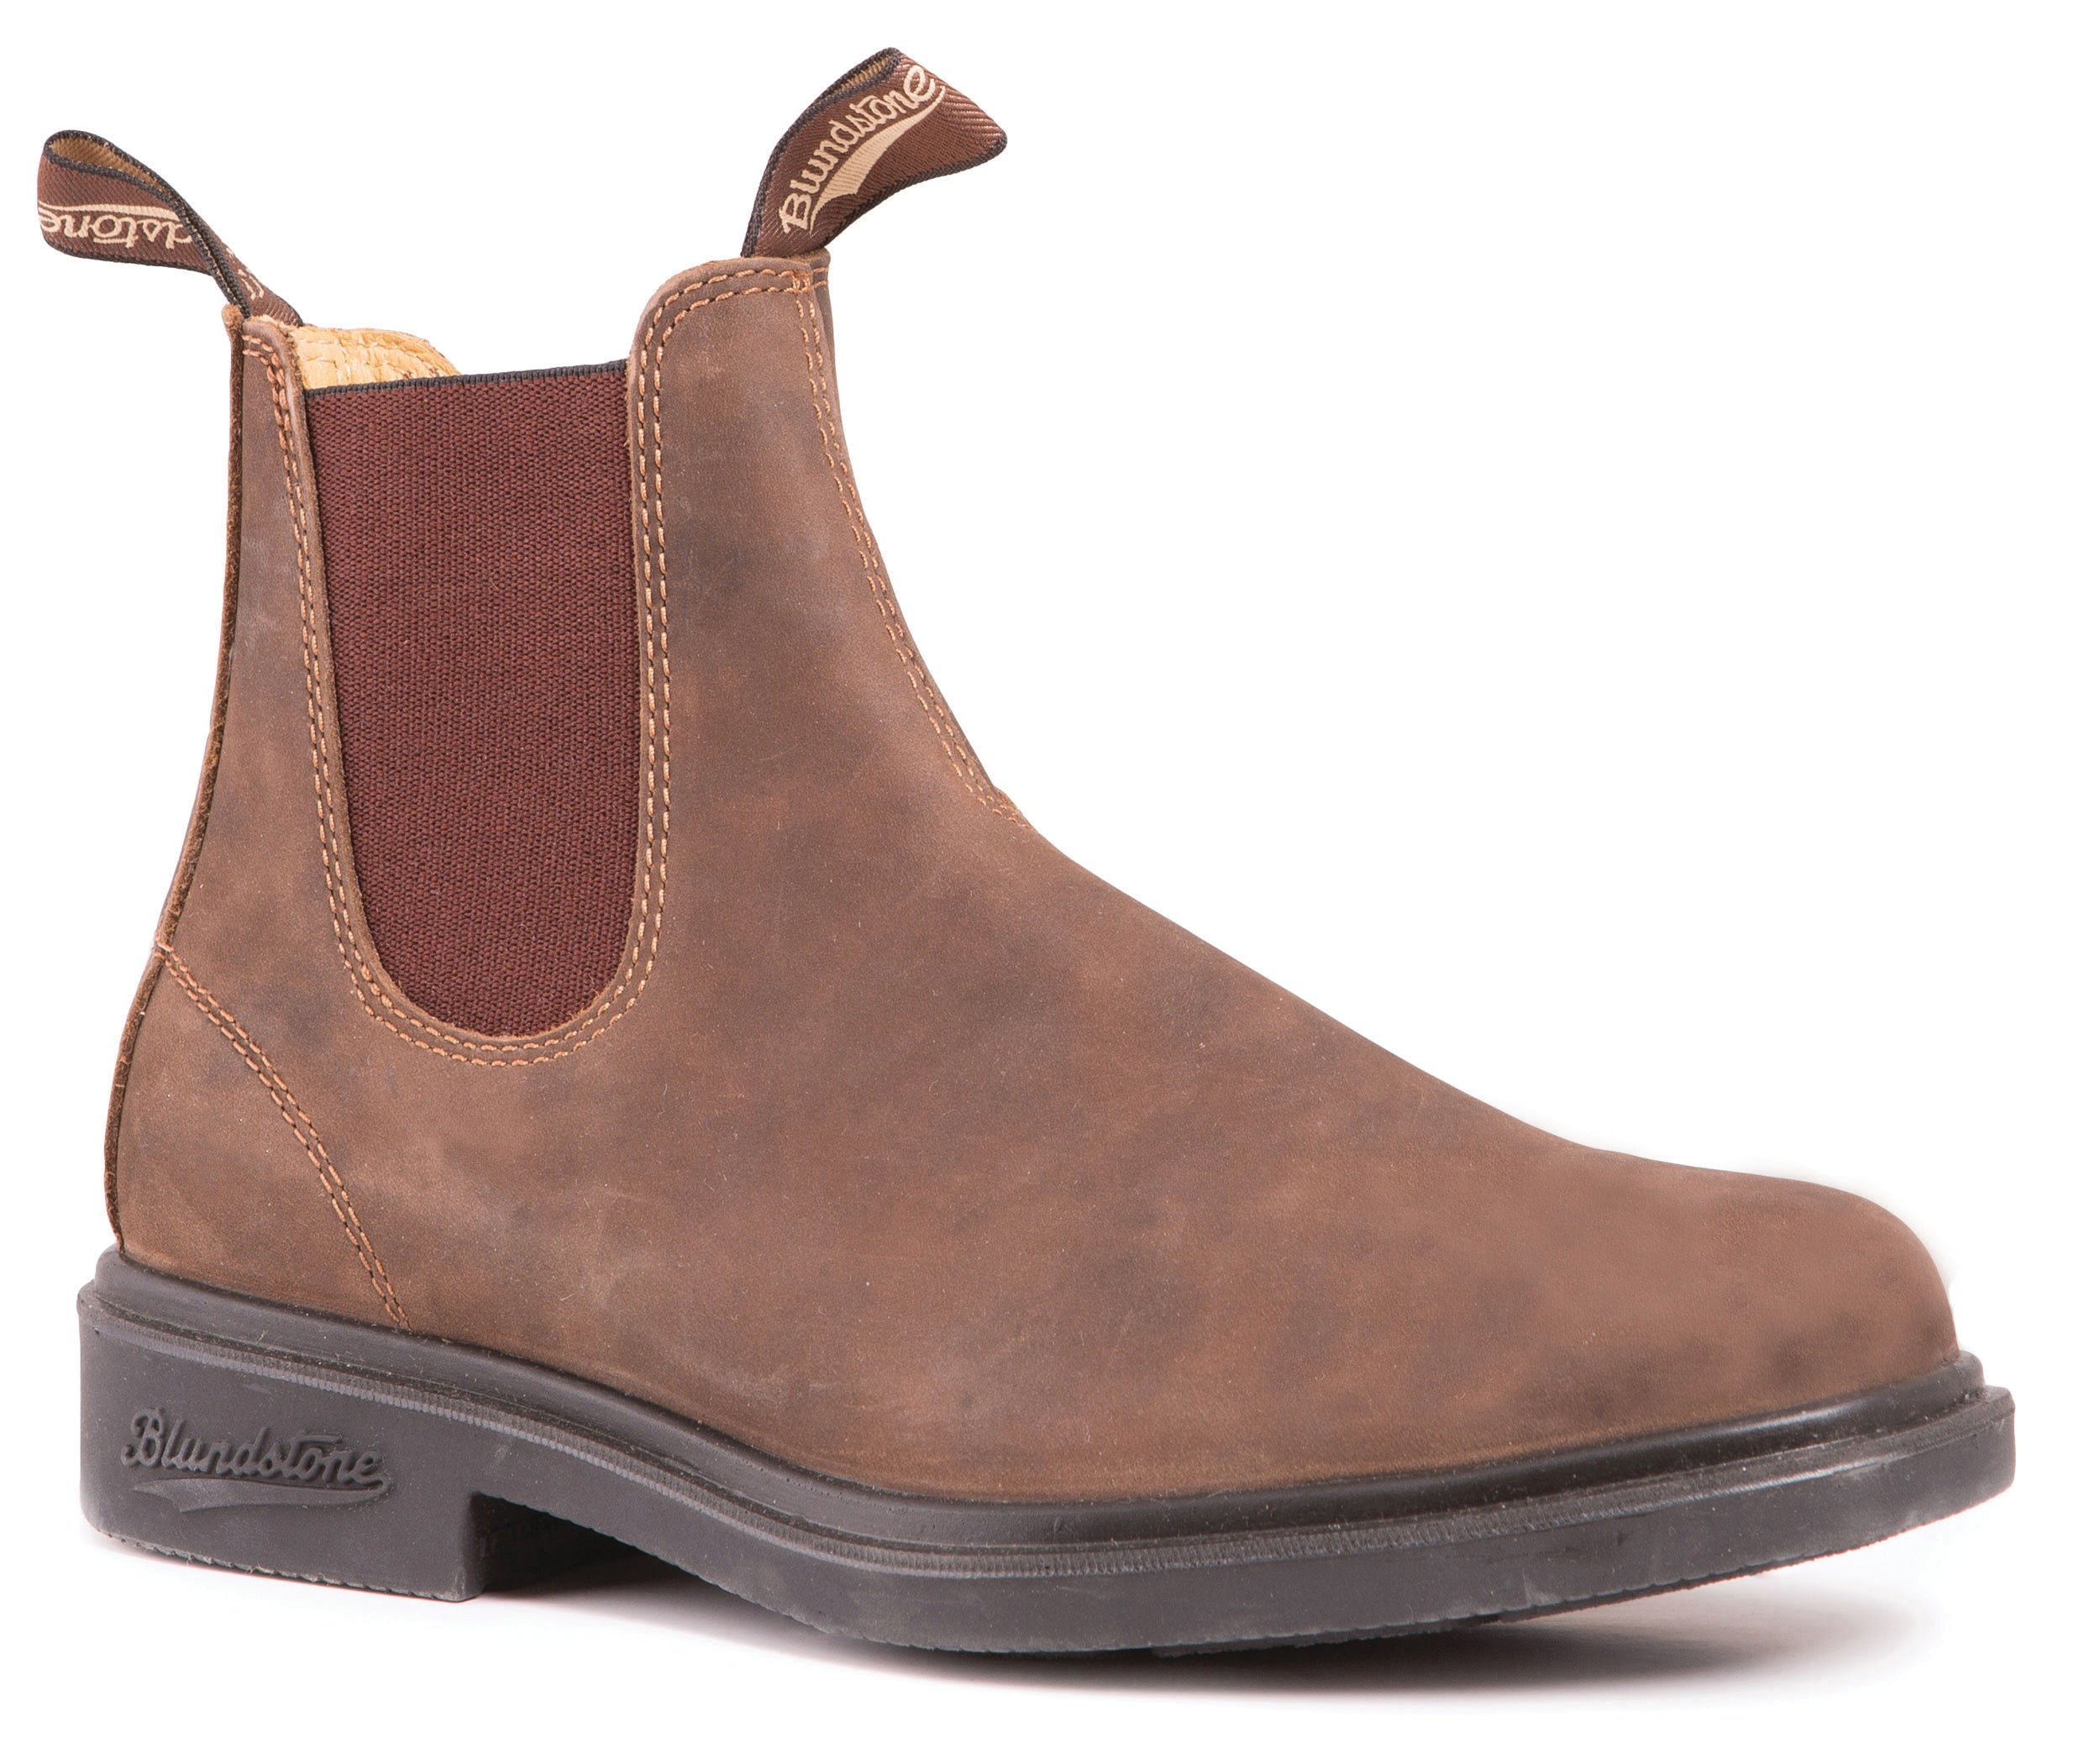 Blundstone Chisel Toe Rustic Boot.Canada loves Blundstone Dress Chelsea boots for all-day comfort and all-round value